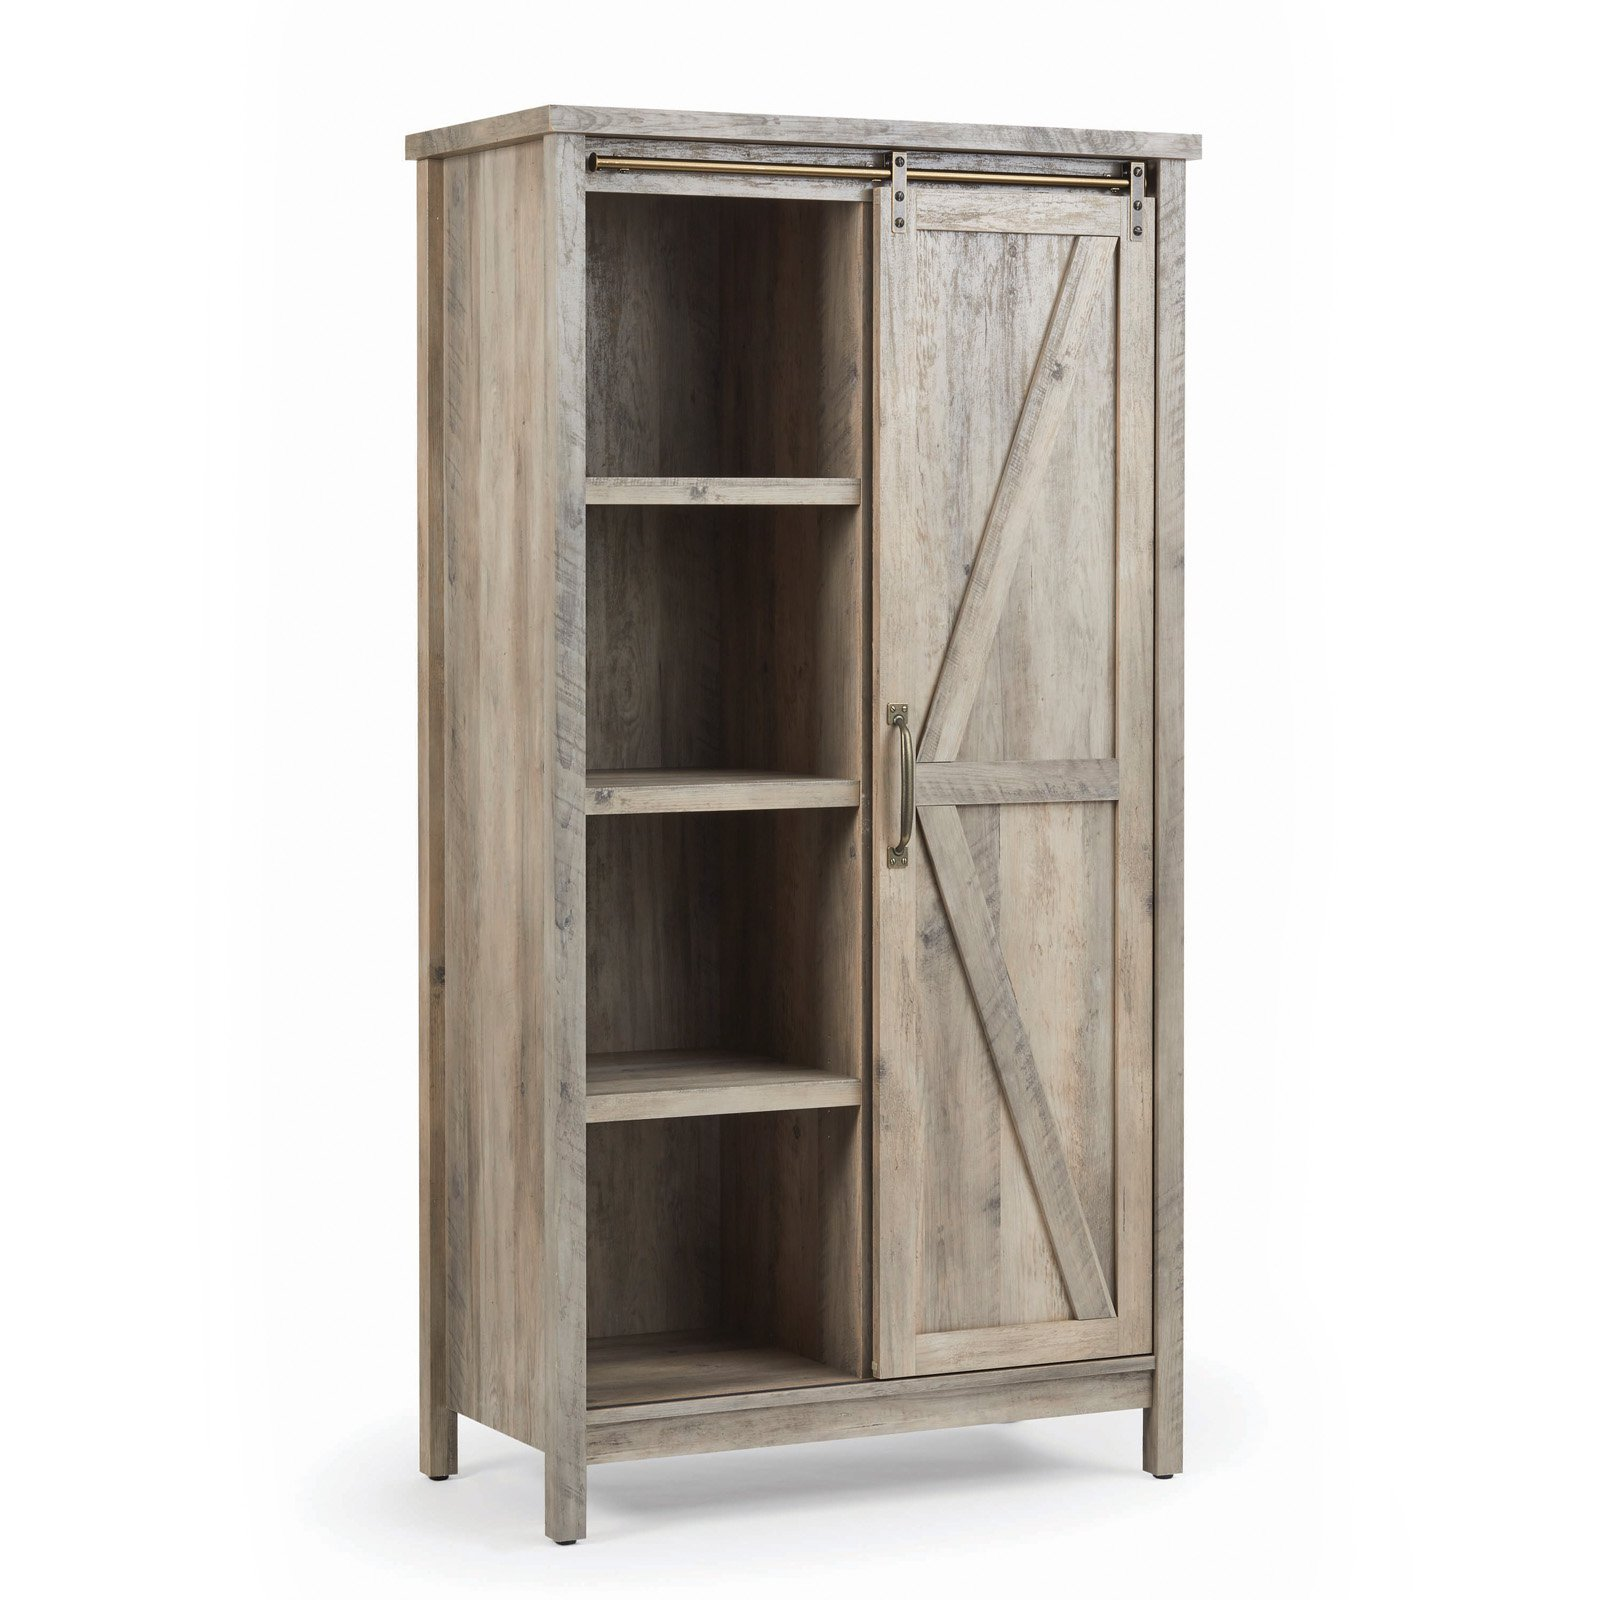 Better Homes U0026 Gardens Modern Farmhouse Storage Cabinet, Rustic Gray Finish